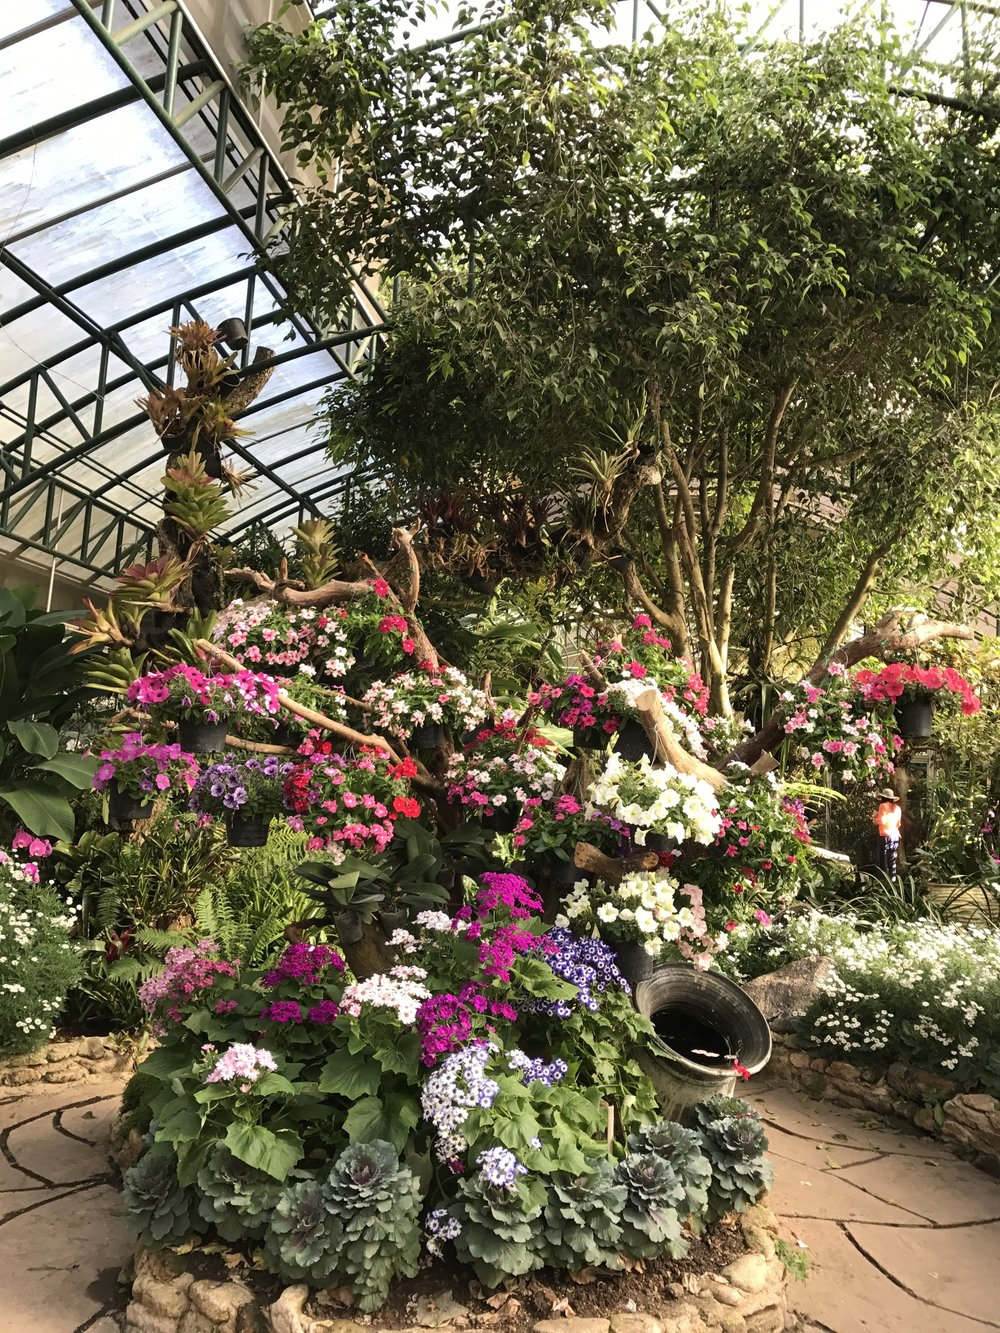 The green house overflows with colorful blooms!